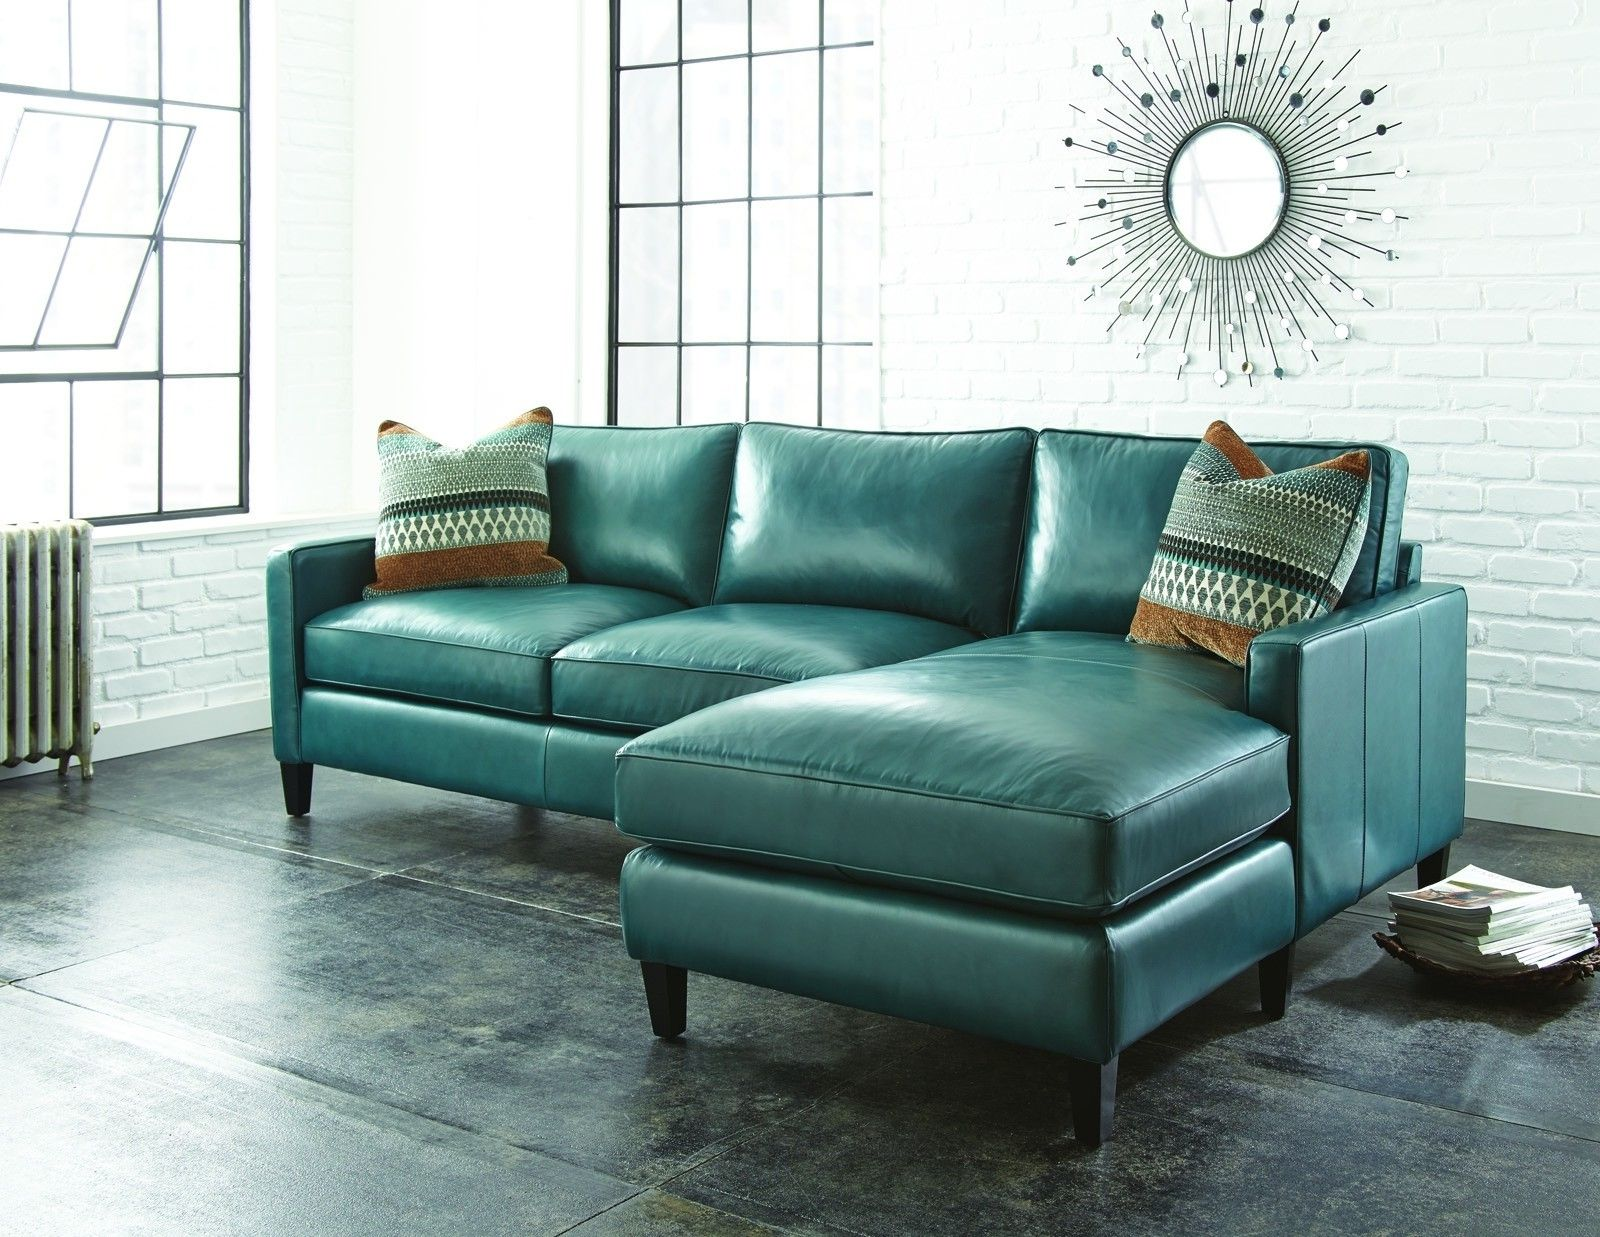 Teal Colored Leather Sofas Black Sofa Slipcovers Sectional White Is The Most Elegant Of